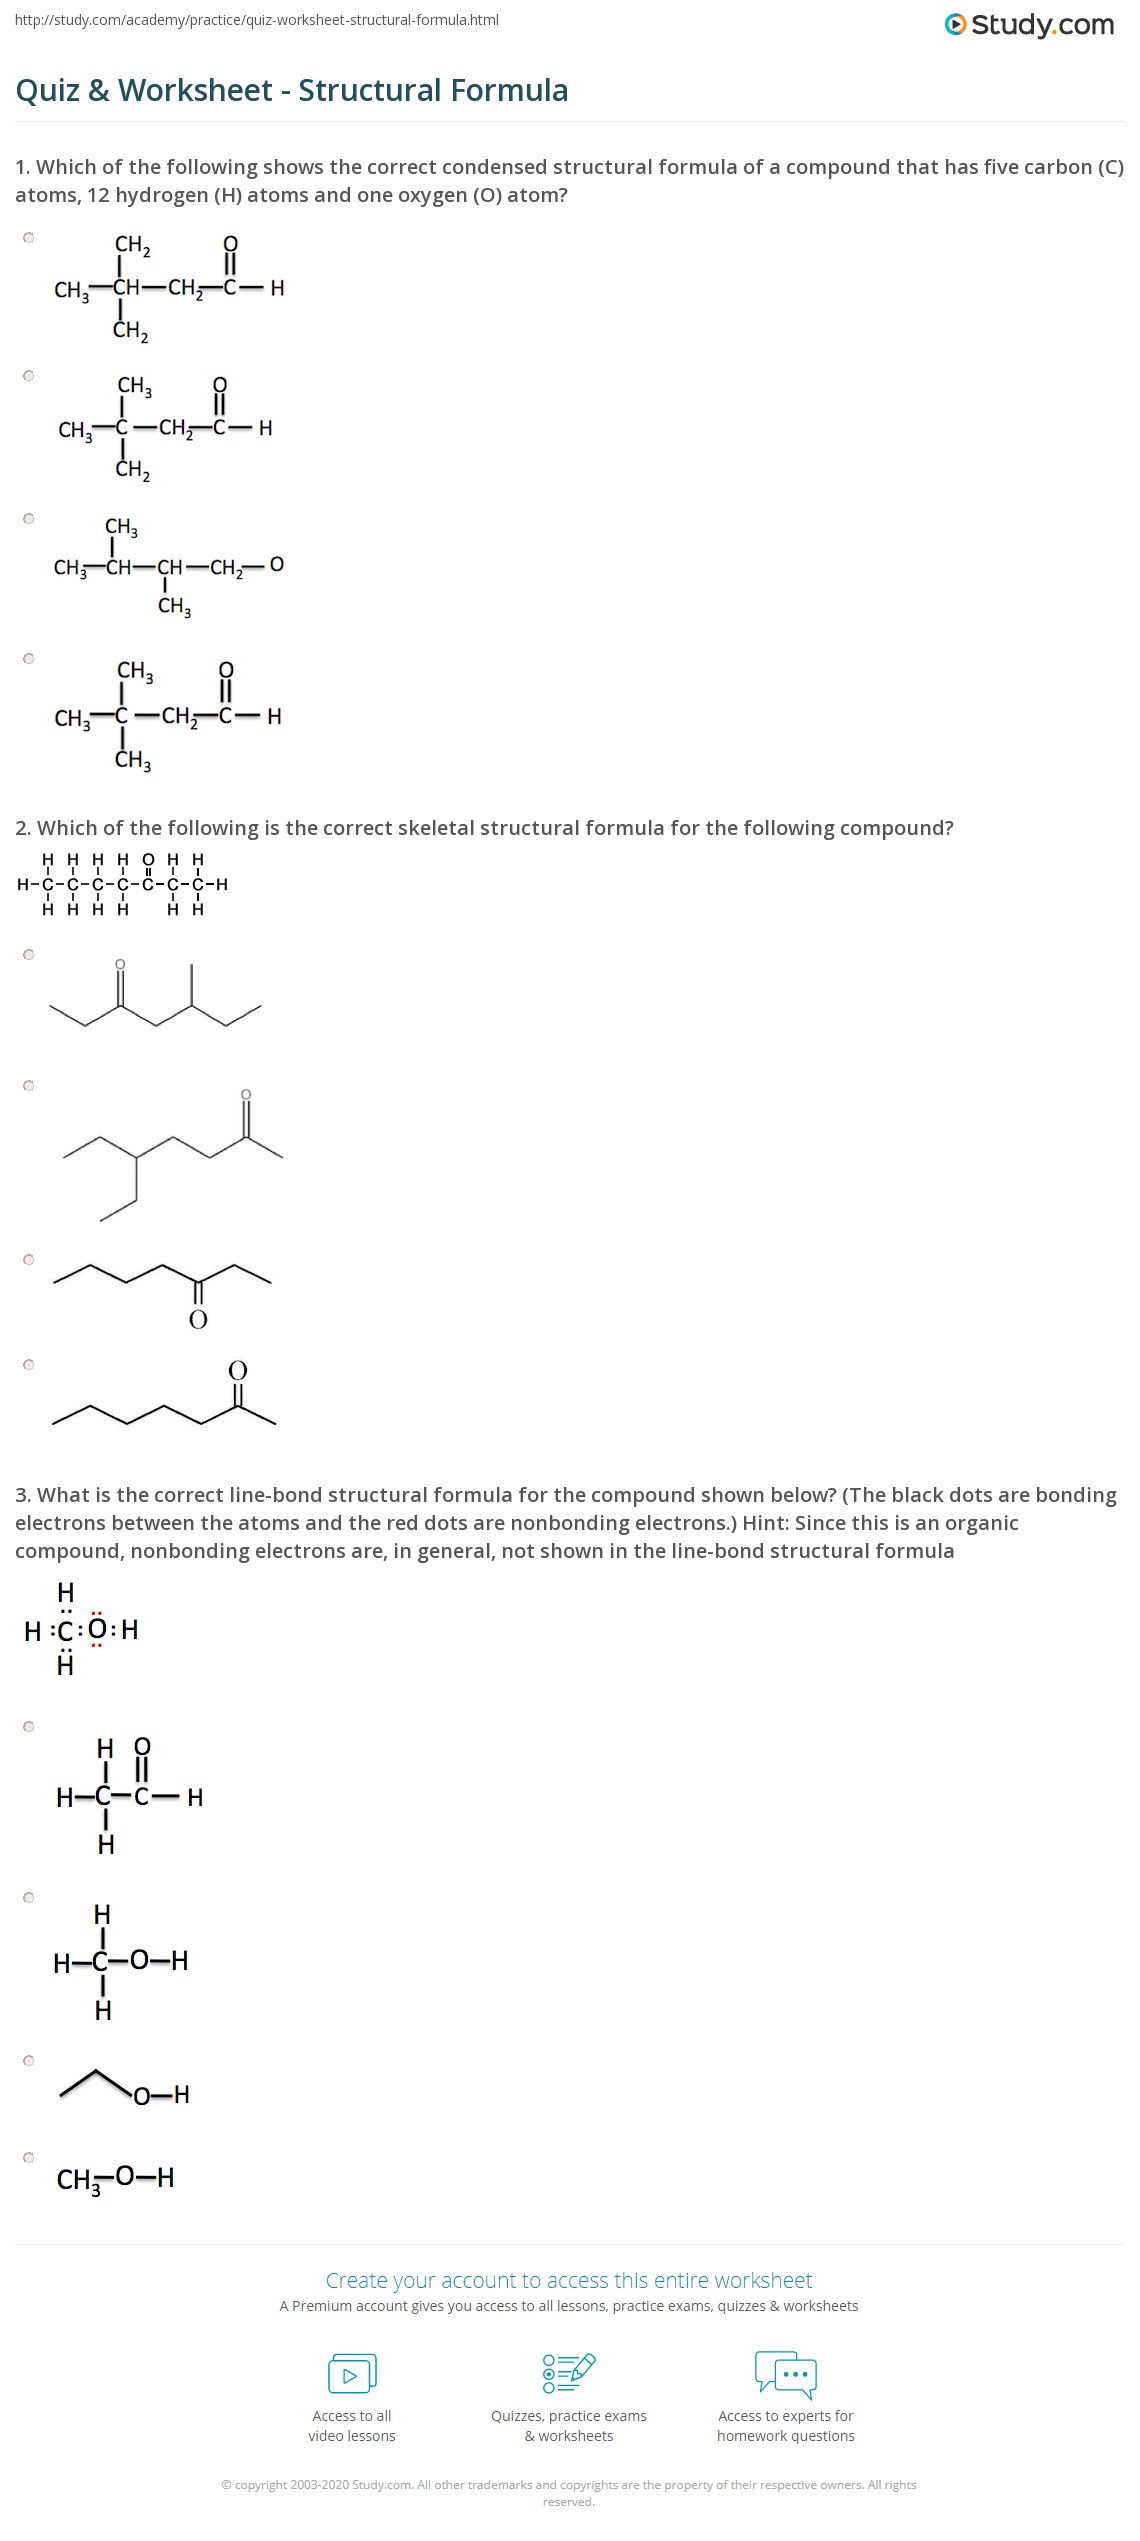 Quiz & Worksheet Structural Formula